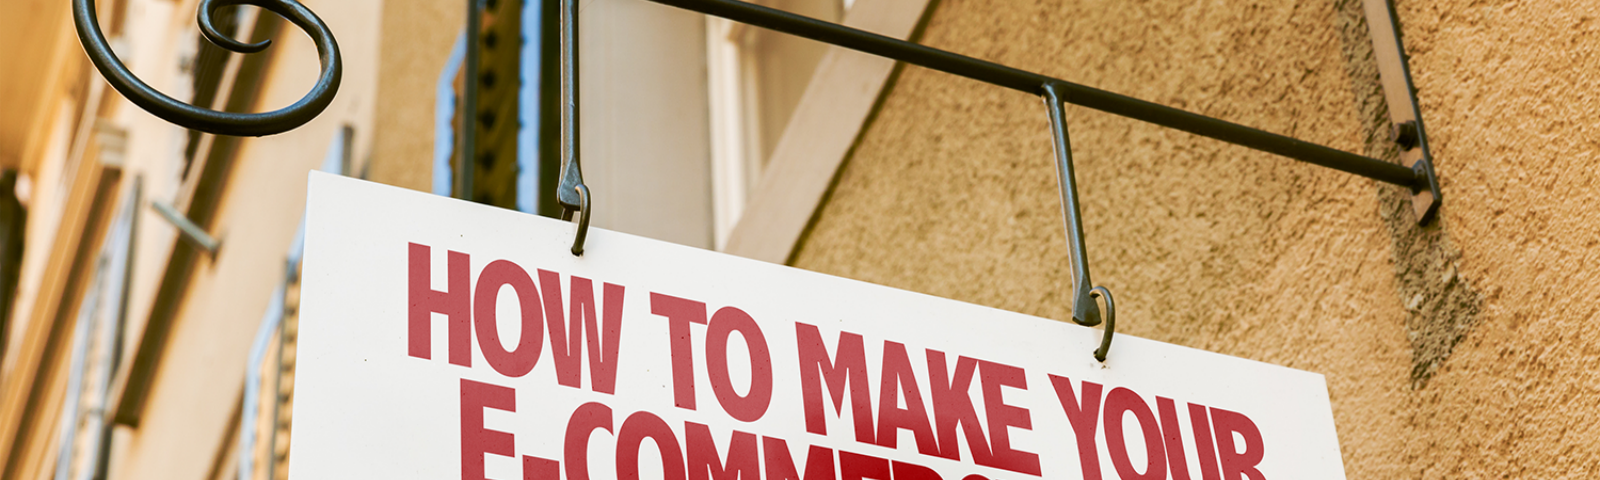 How to Make Your e-Commerce Site Happen—5 Ways to Improve Your Online Store After Launch